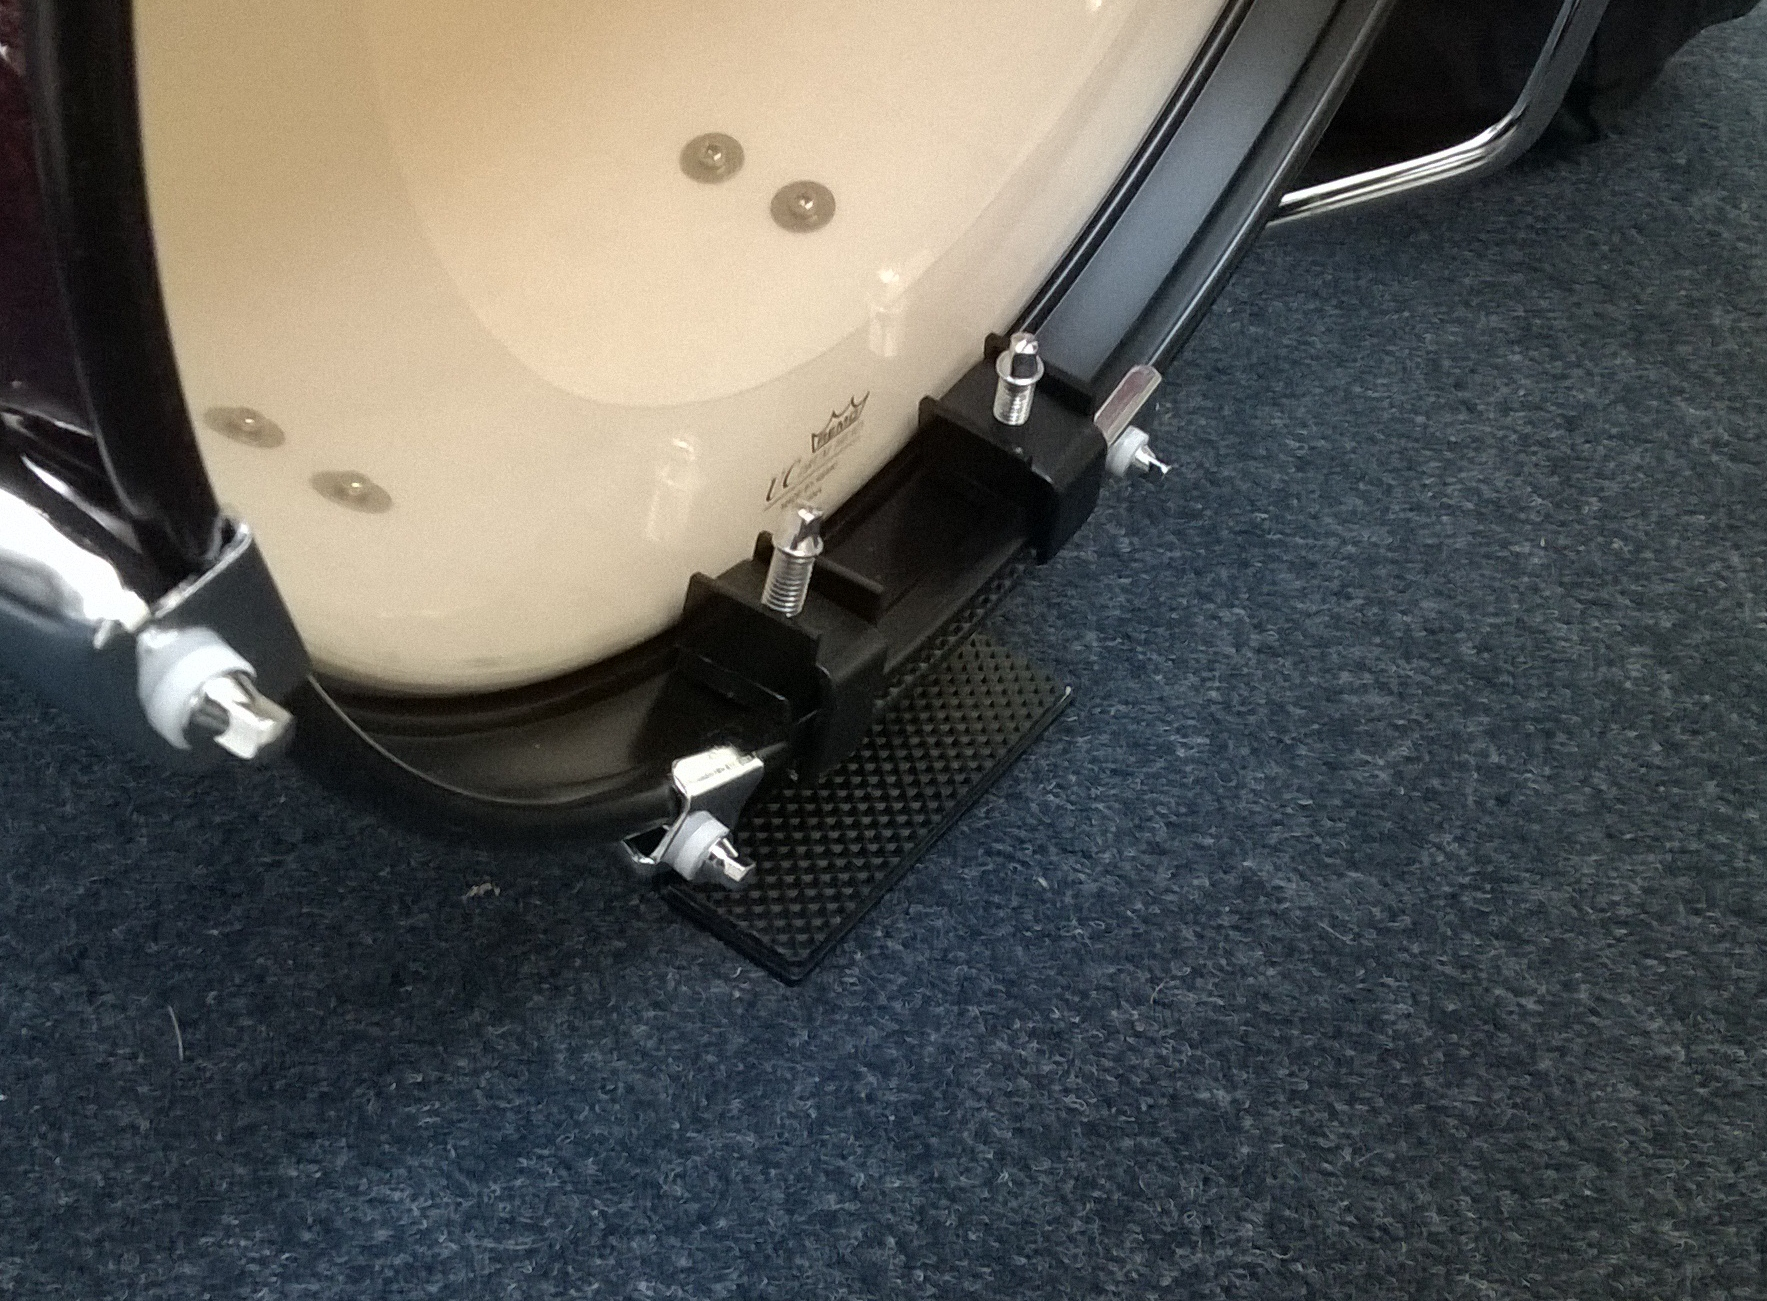 The riser helps place the small diameter bass drum more in-line with the pedal's natural striking spot